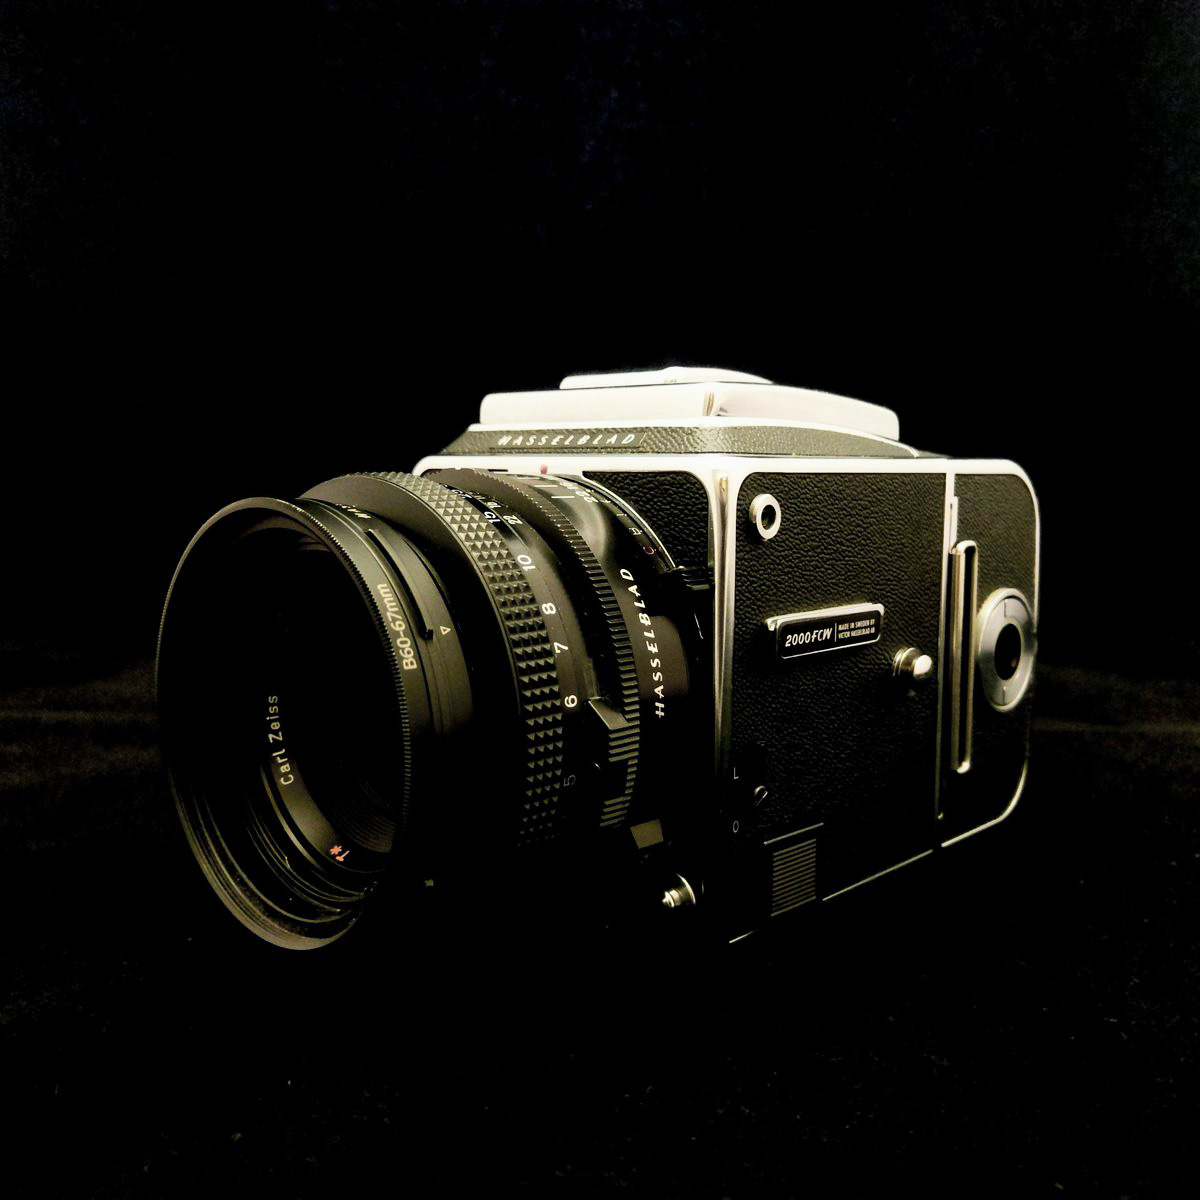 The Ultimate guide to the Hasselblad 2000FCW, a focal plane